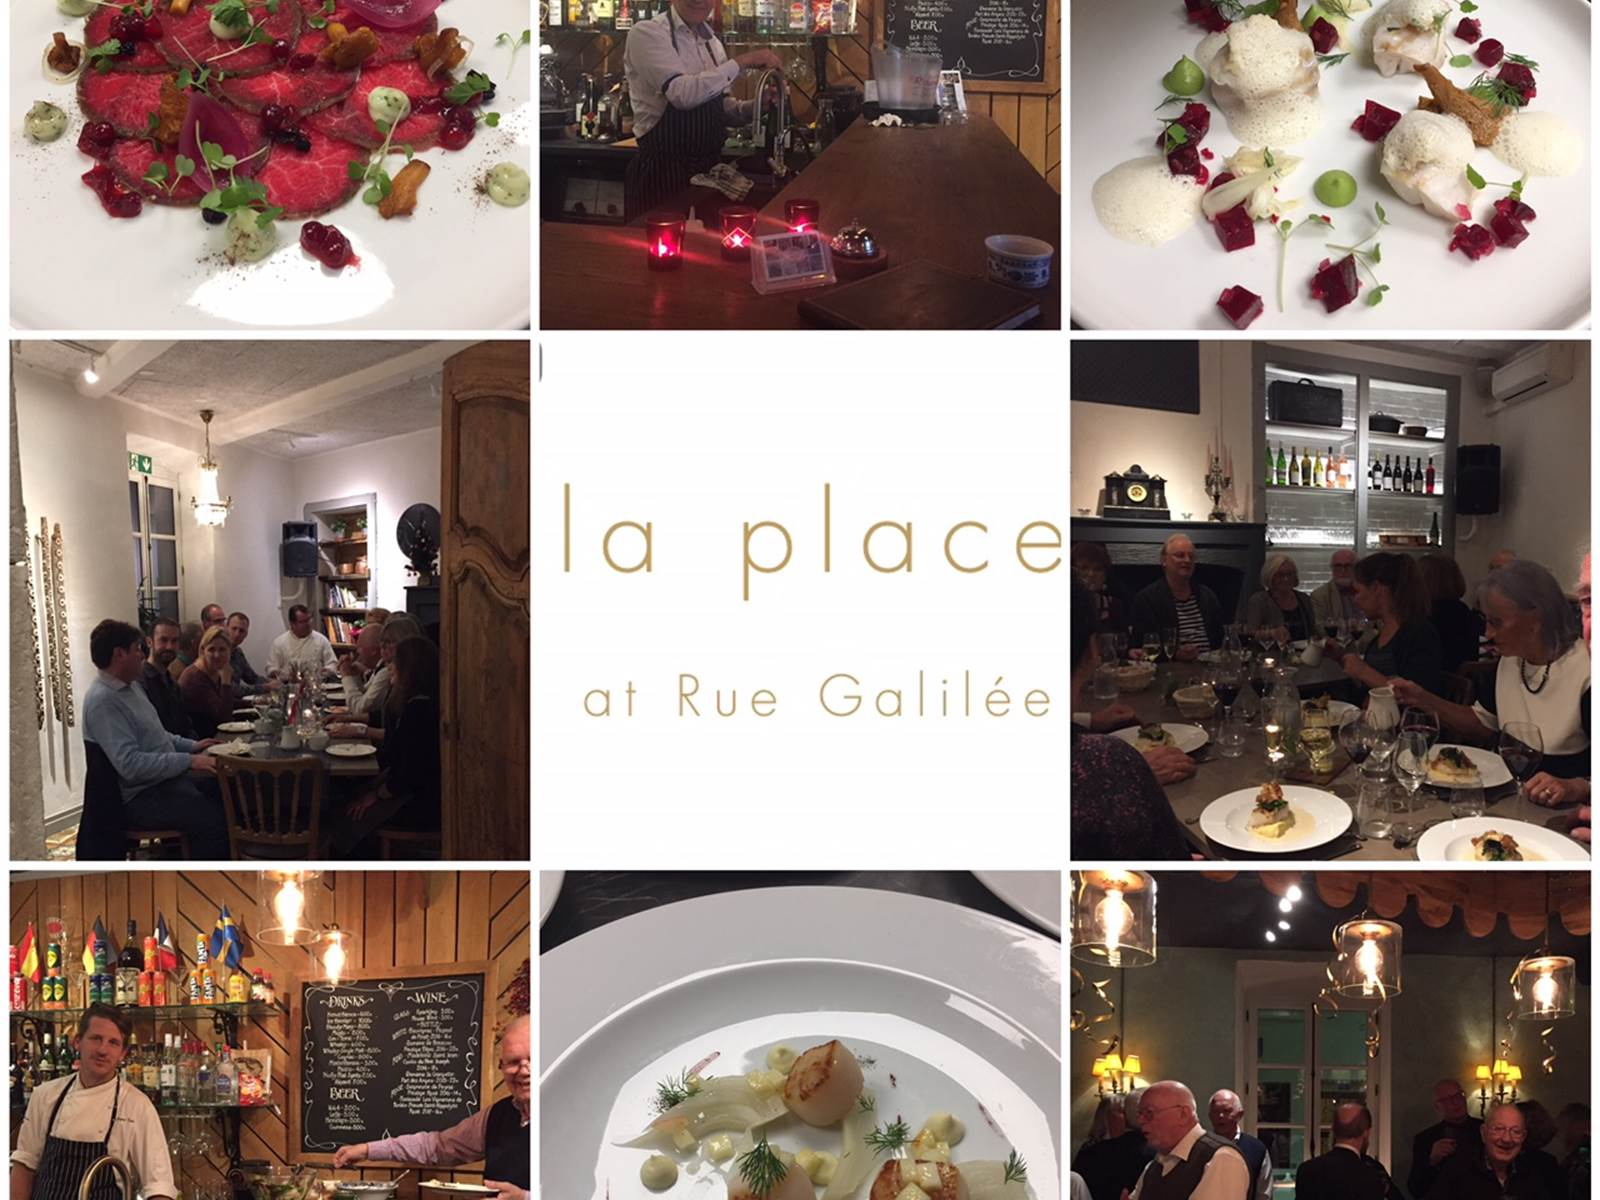 Restaurant La Place at Rue Galilee